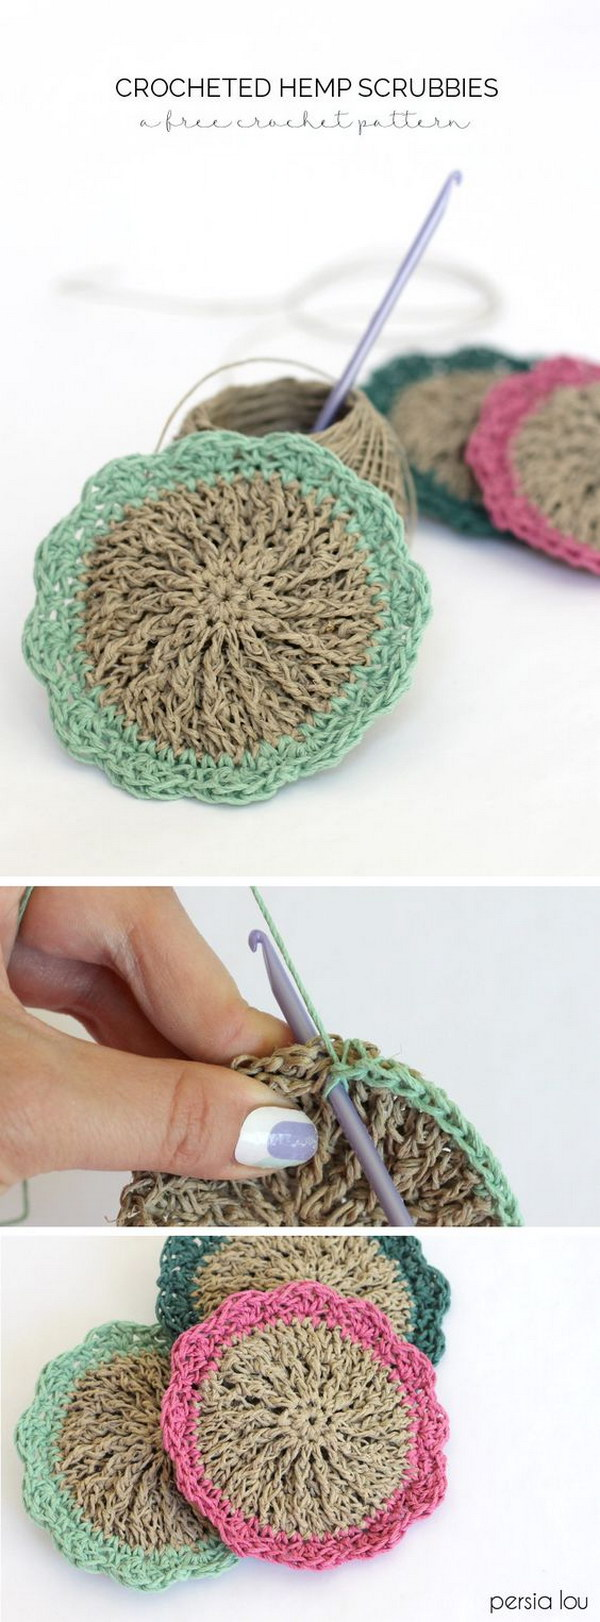 Crocheted Hemp Scrubbies.